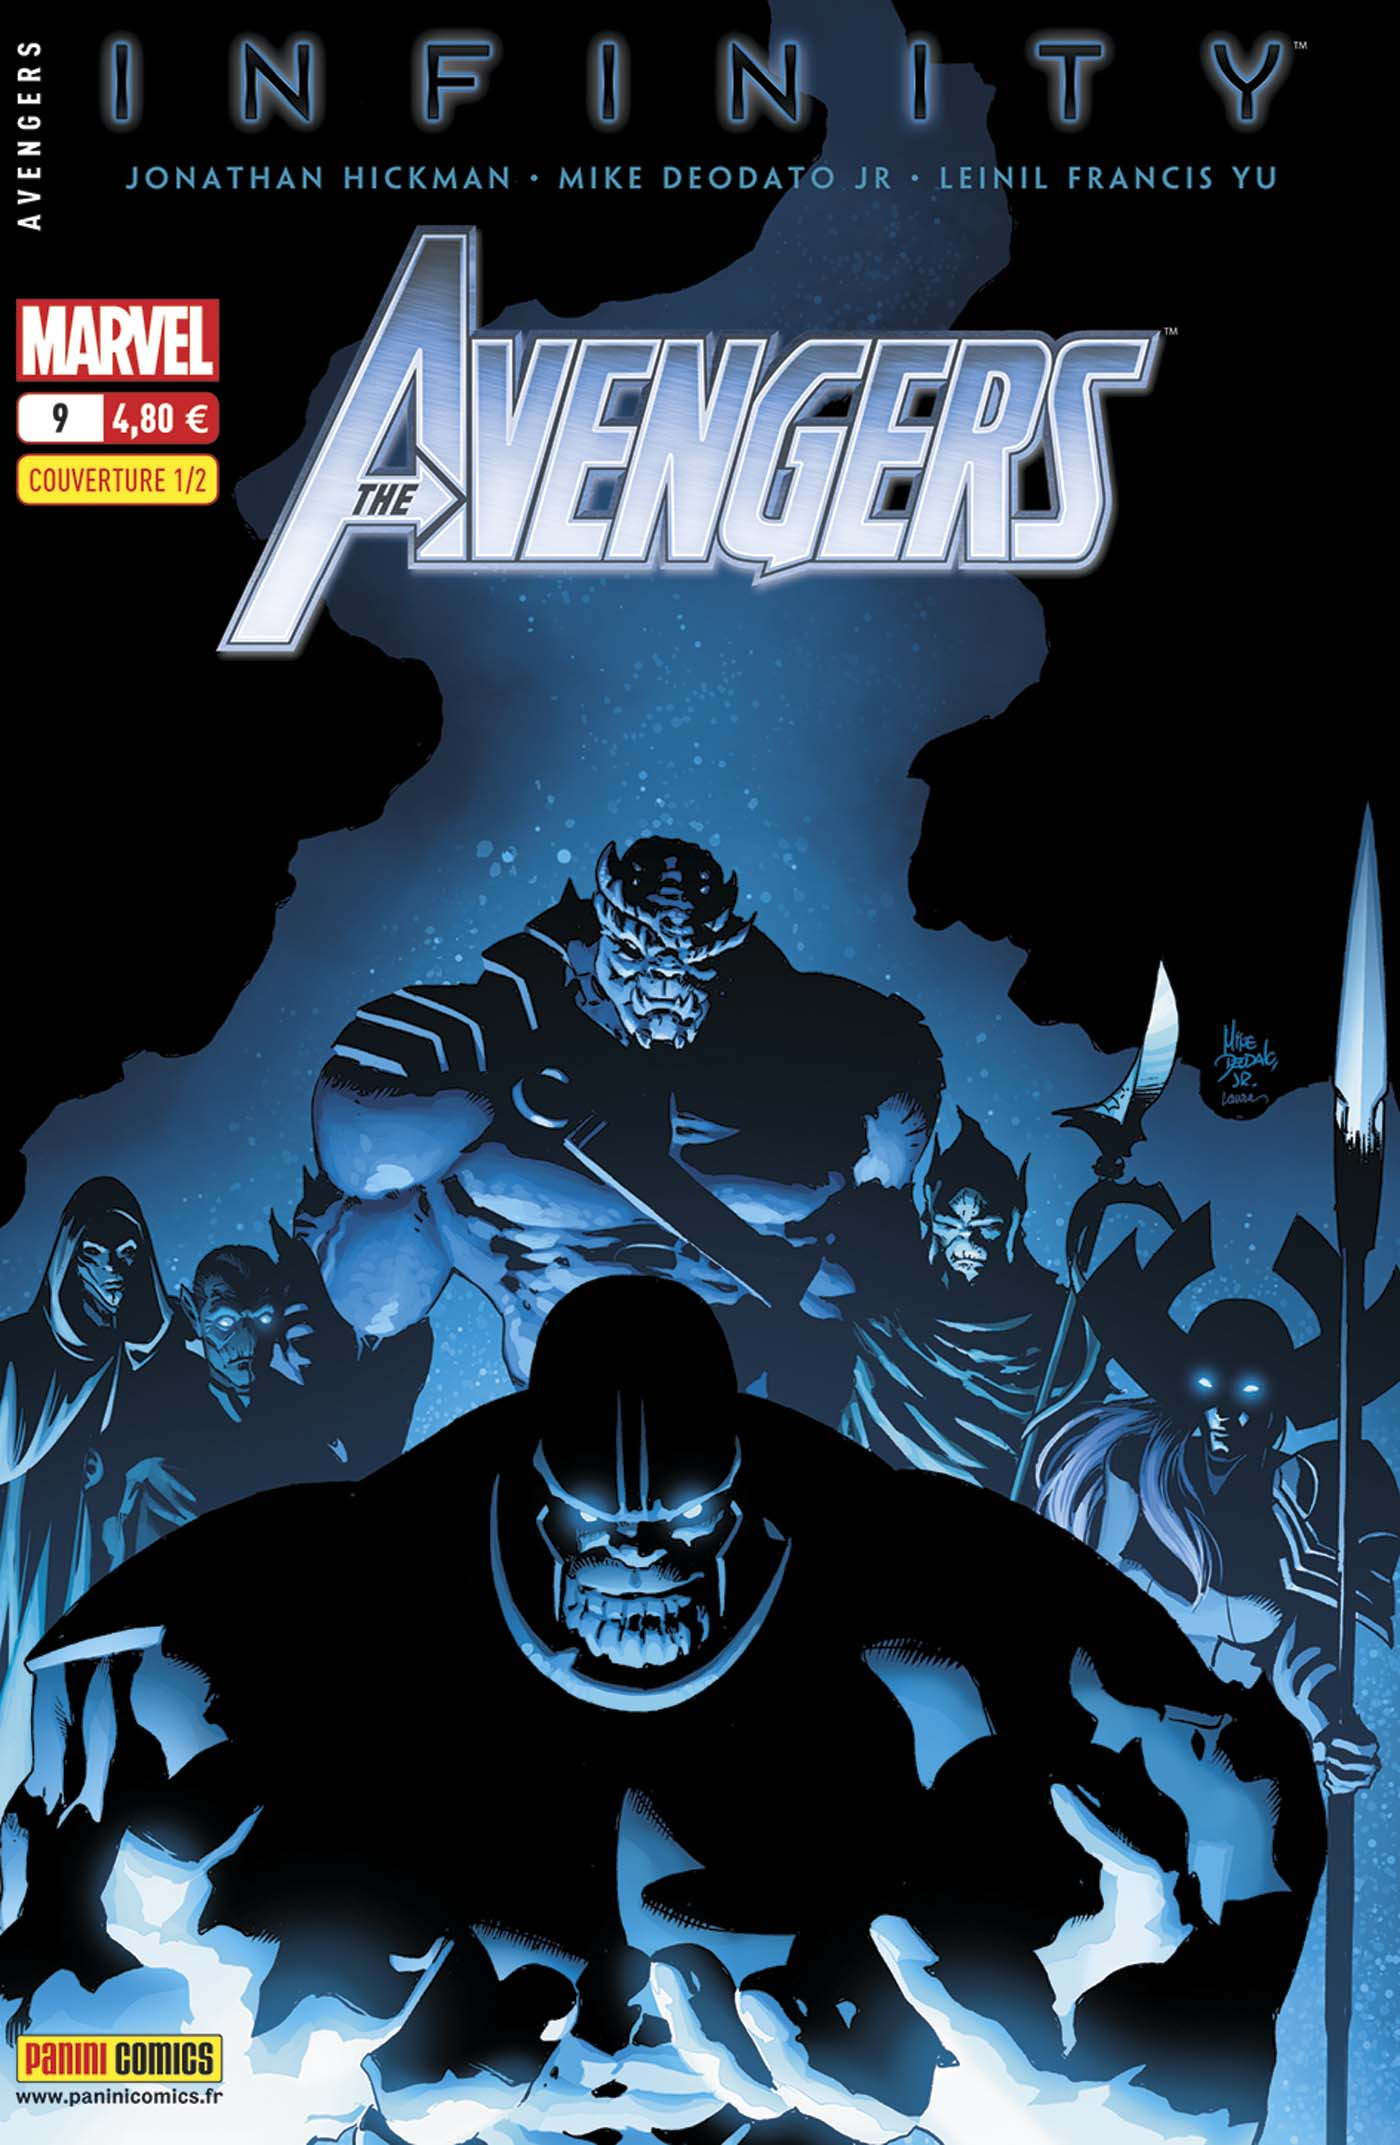 Avengers 9 - Couverture 1/2 : Mike Deodato